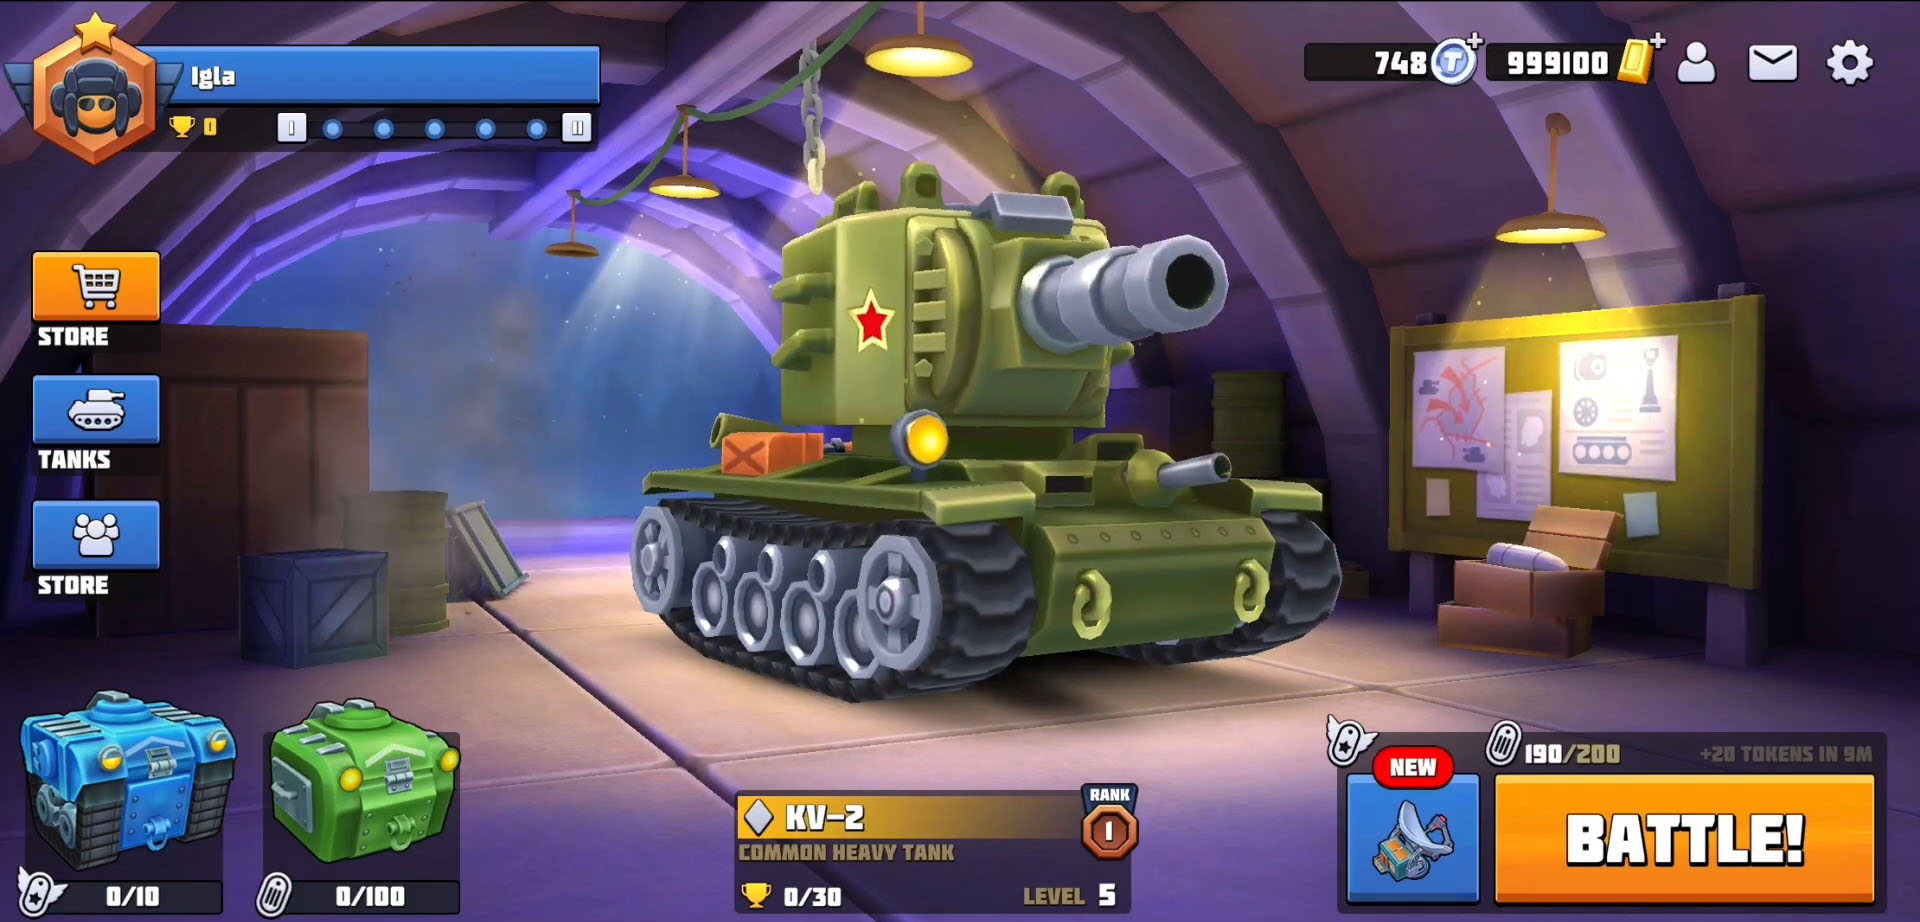 Tanks Brawl : Fun PvP Battles! capture d'écran 1